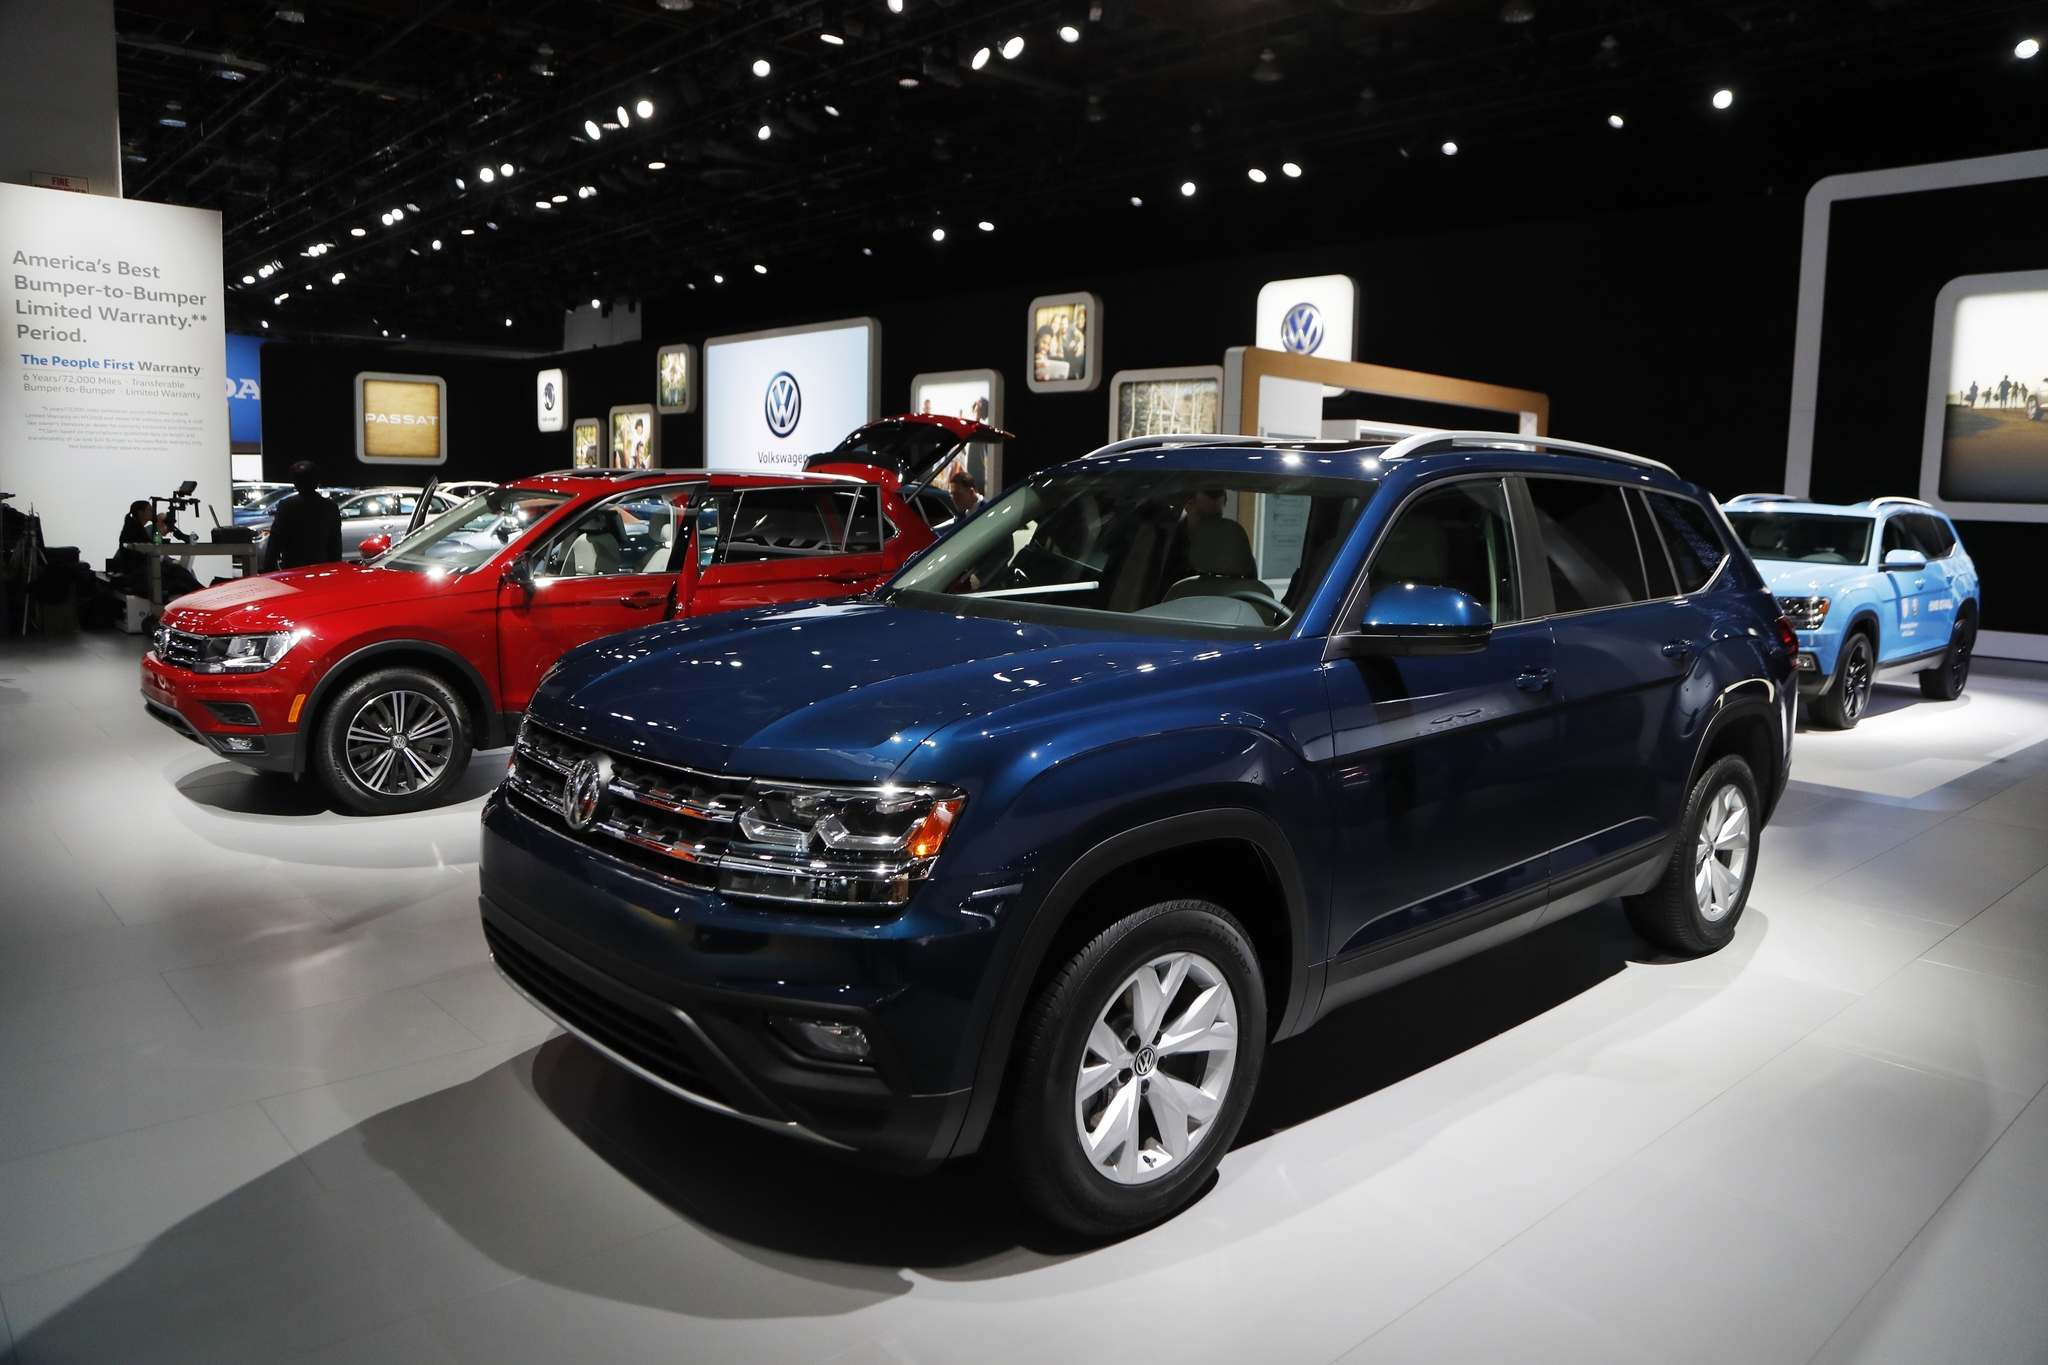 Volkswagen Canada completed an analysis of the Winnipeg market and identified an opening for a third franchise. (Carlos Osorio / The Associated Press files)</p>